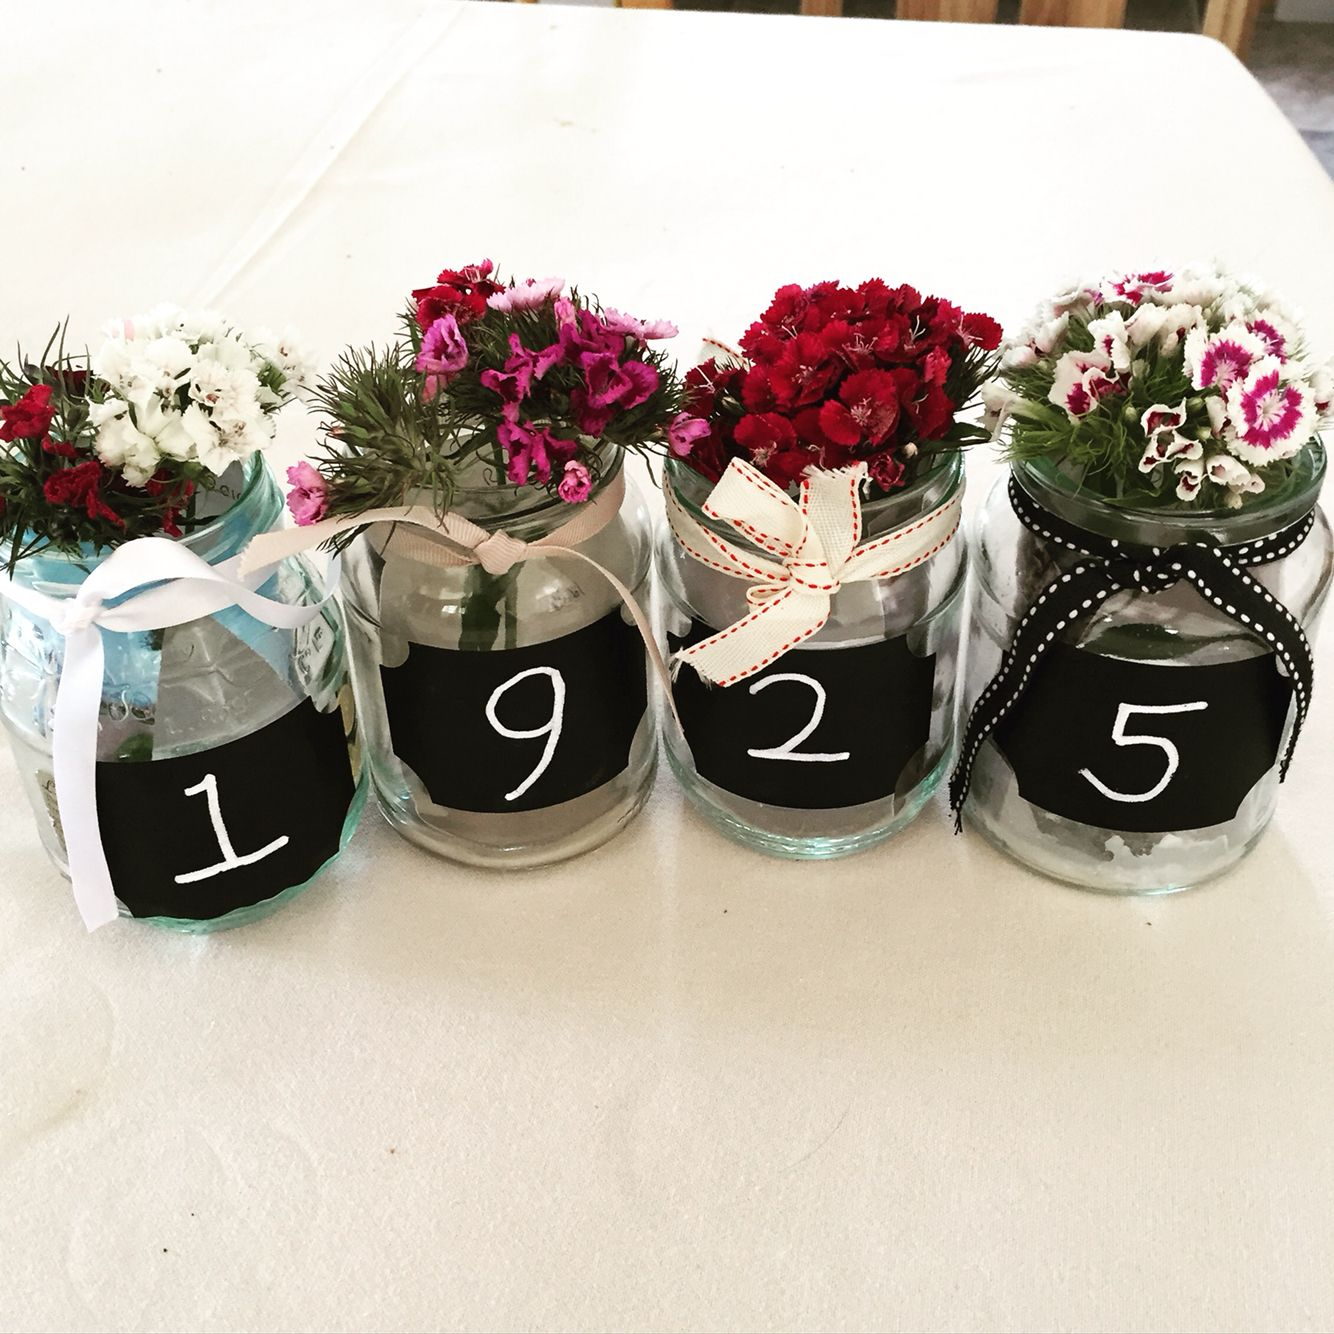 Use chalkboard numbers table centre piece grandad th born in